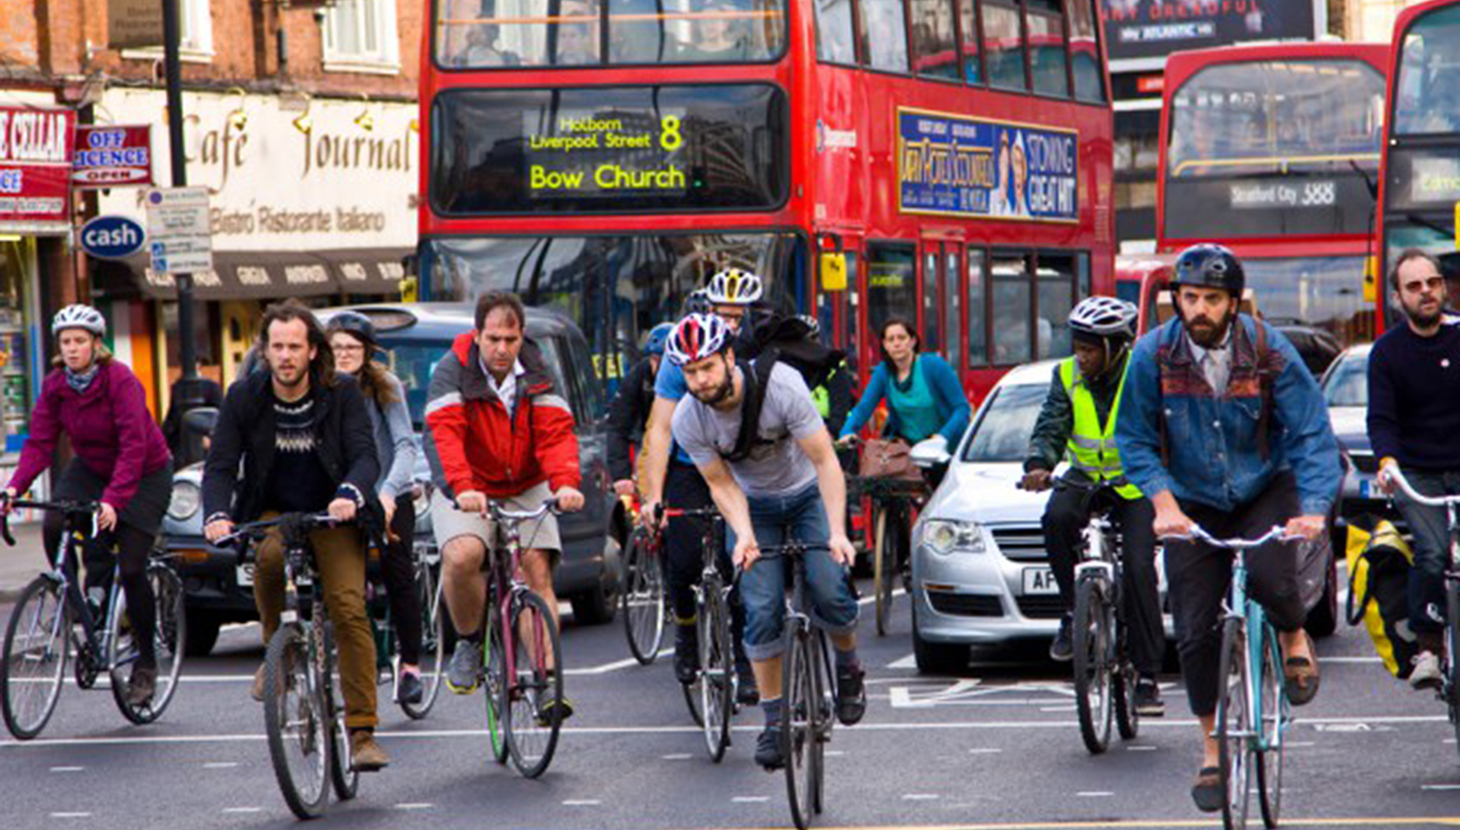 peoplecycling-throughlondon